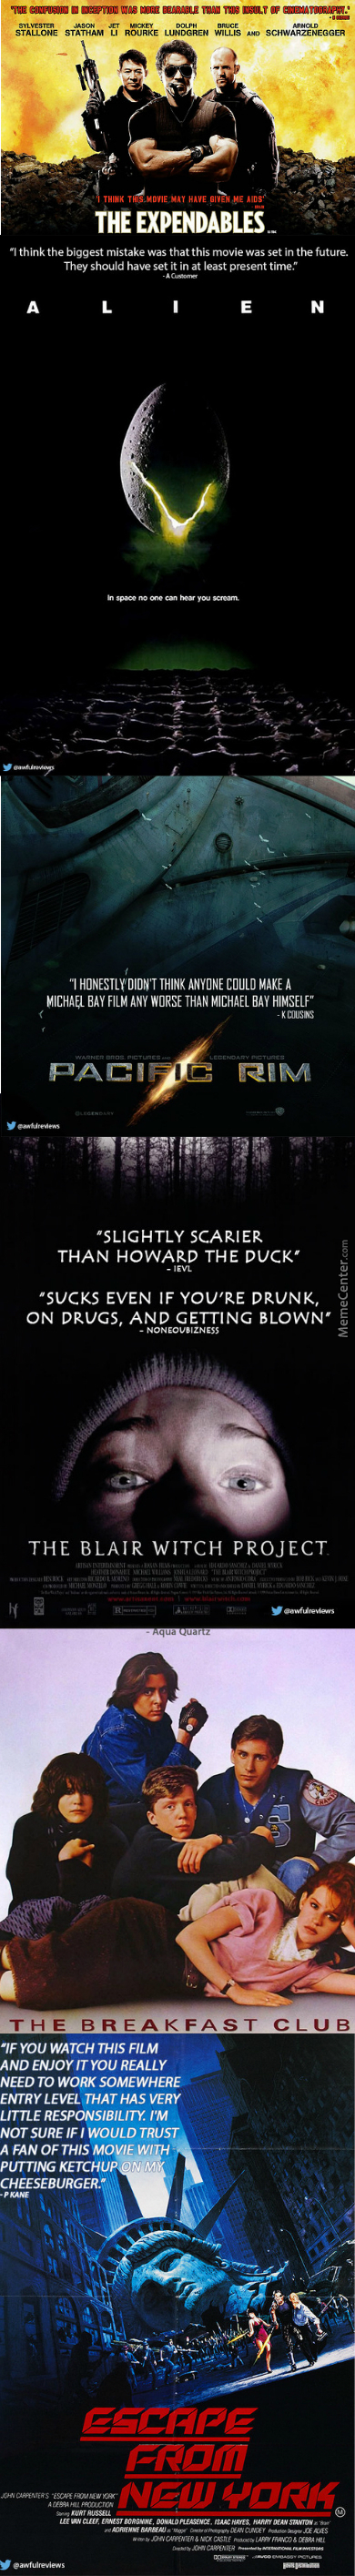 Bad Amazon Reviews Placed On Movie Posters